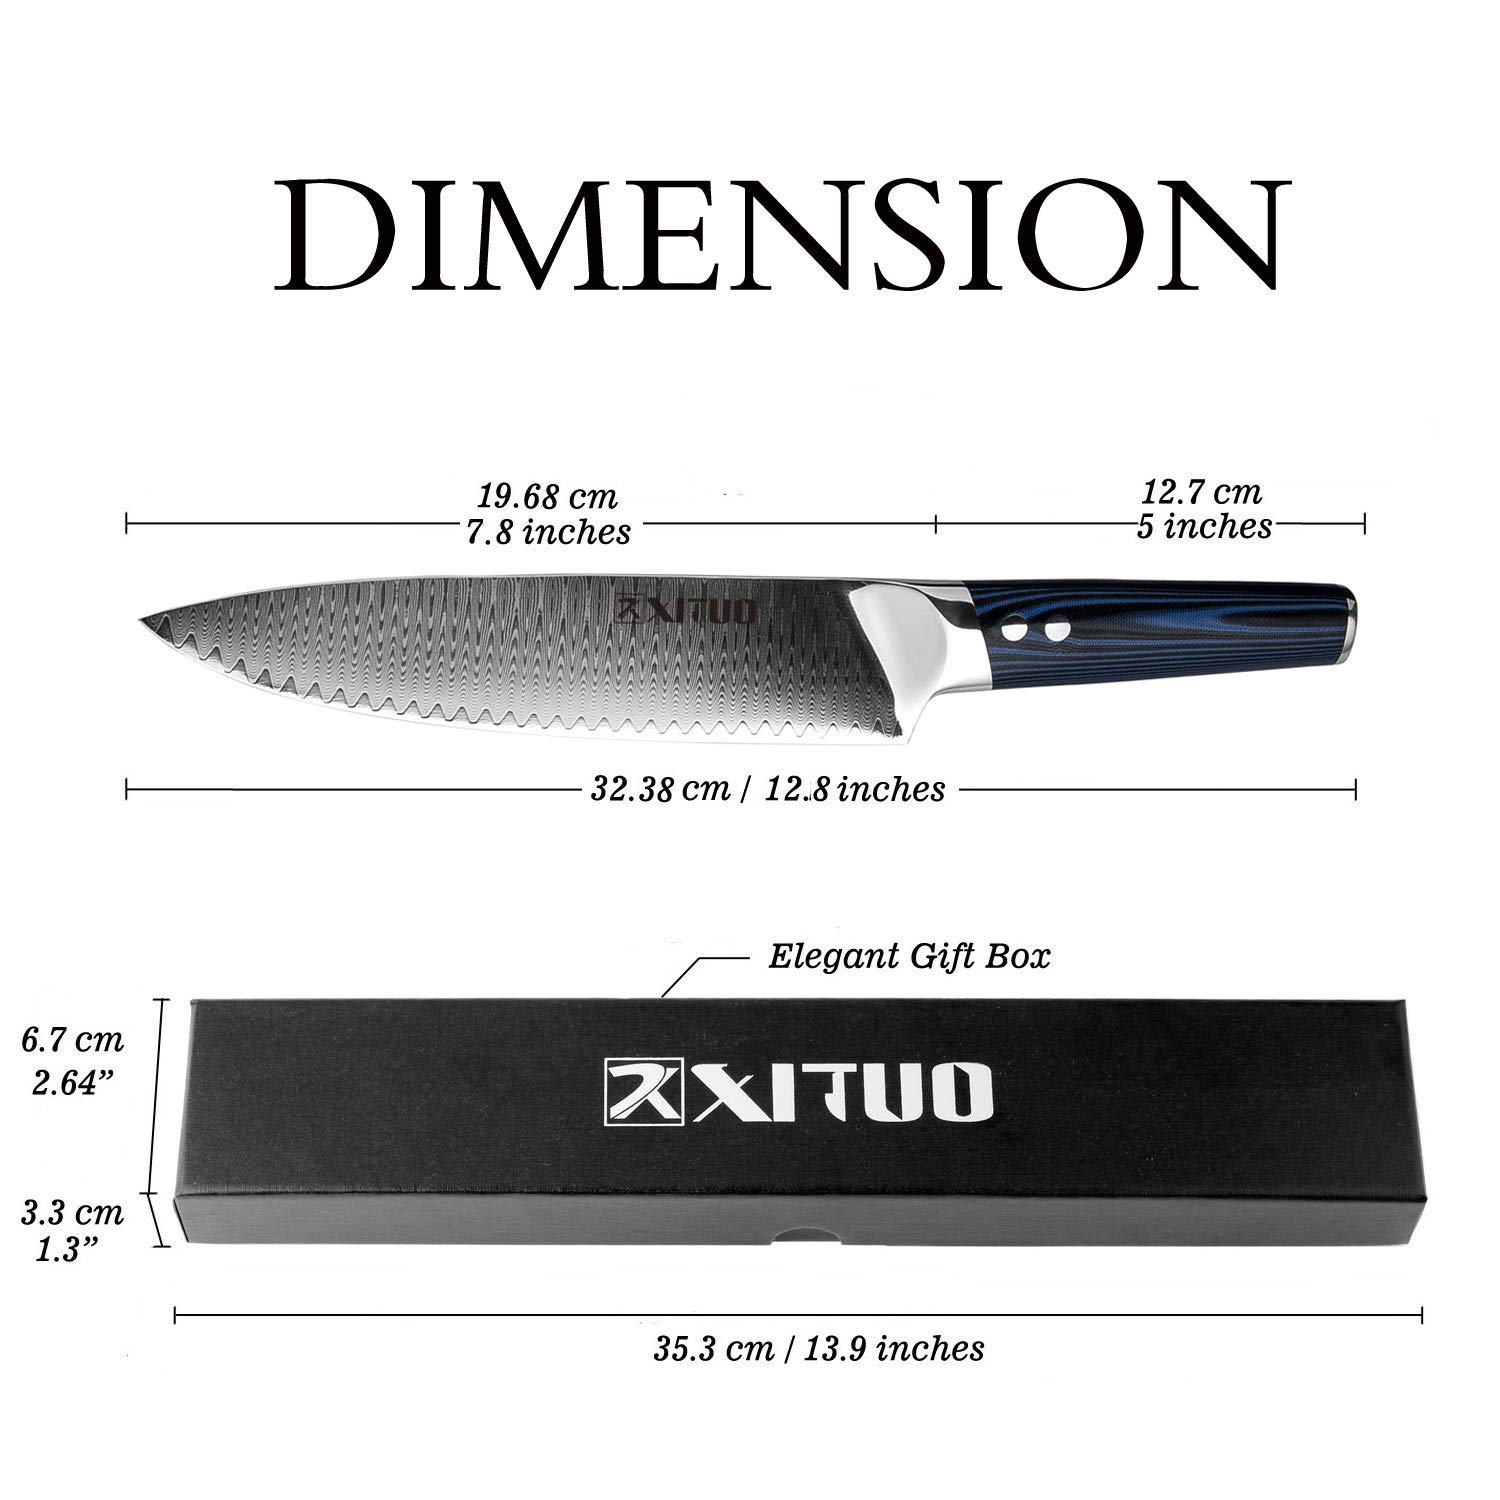 XITUO 8-inch Chef Knife Japanese VG 10 High Carbon Damascus Stainless Steel Kitchen Knife with Ergonomic Micarta Handle and Razor Sharp Blade For Dealing Meat, Fruits and Vegetables by XITUO (Image #4)